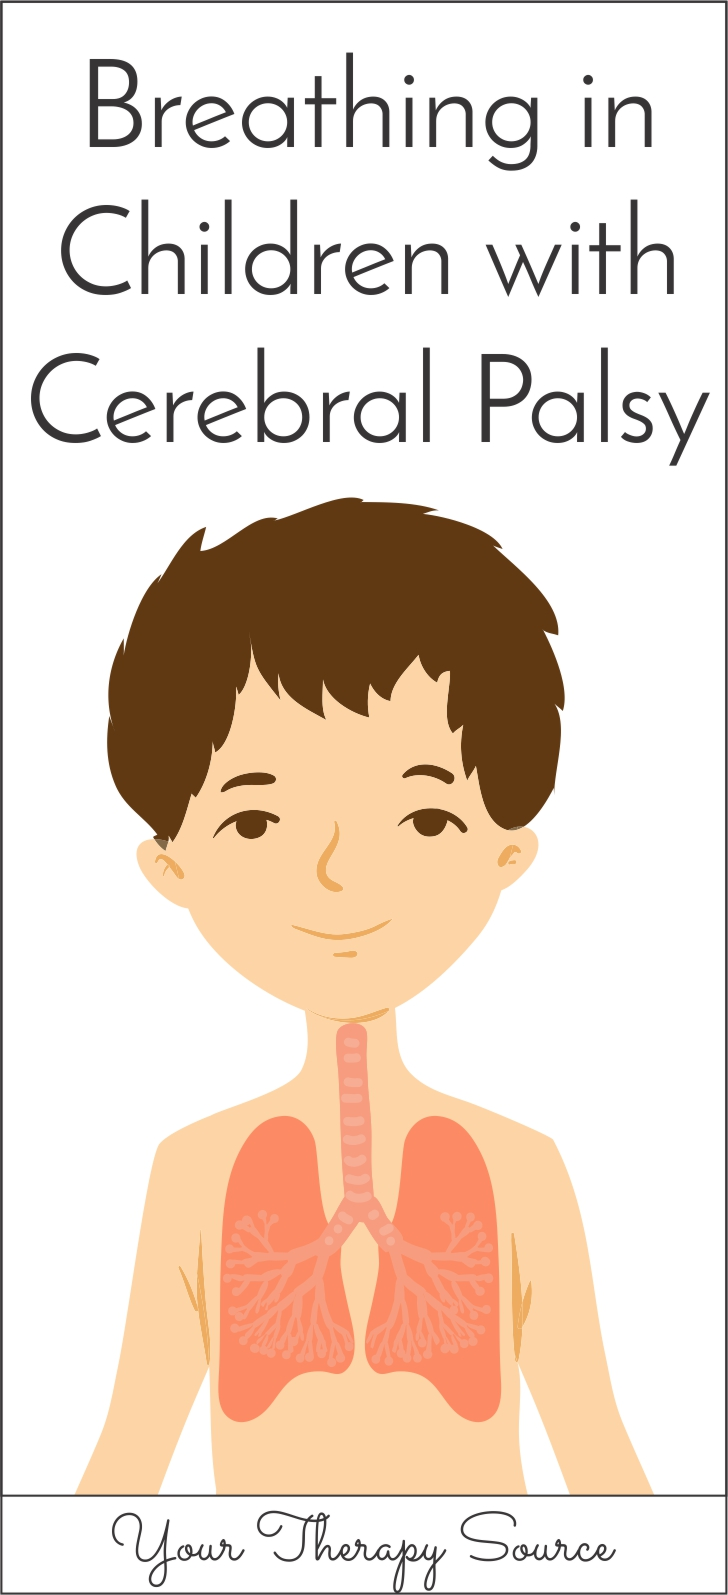 Breathing in Children with Cerebral Palsy